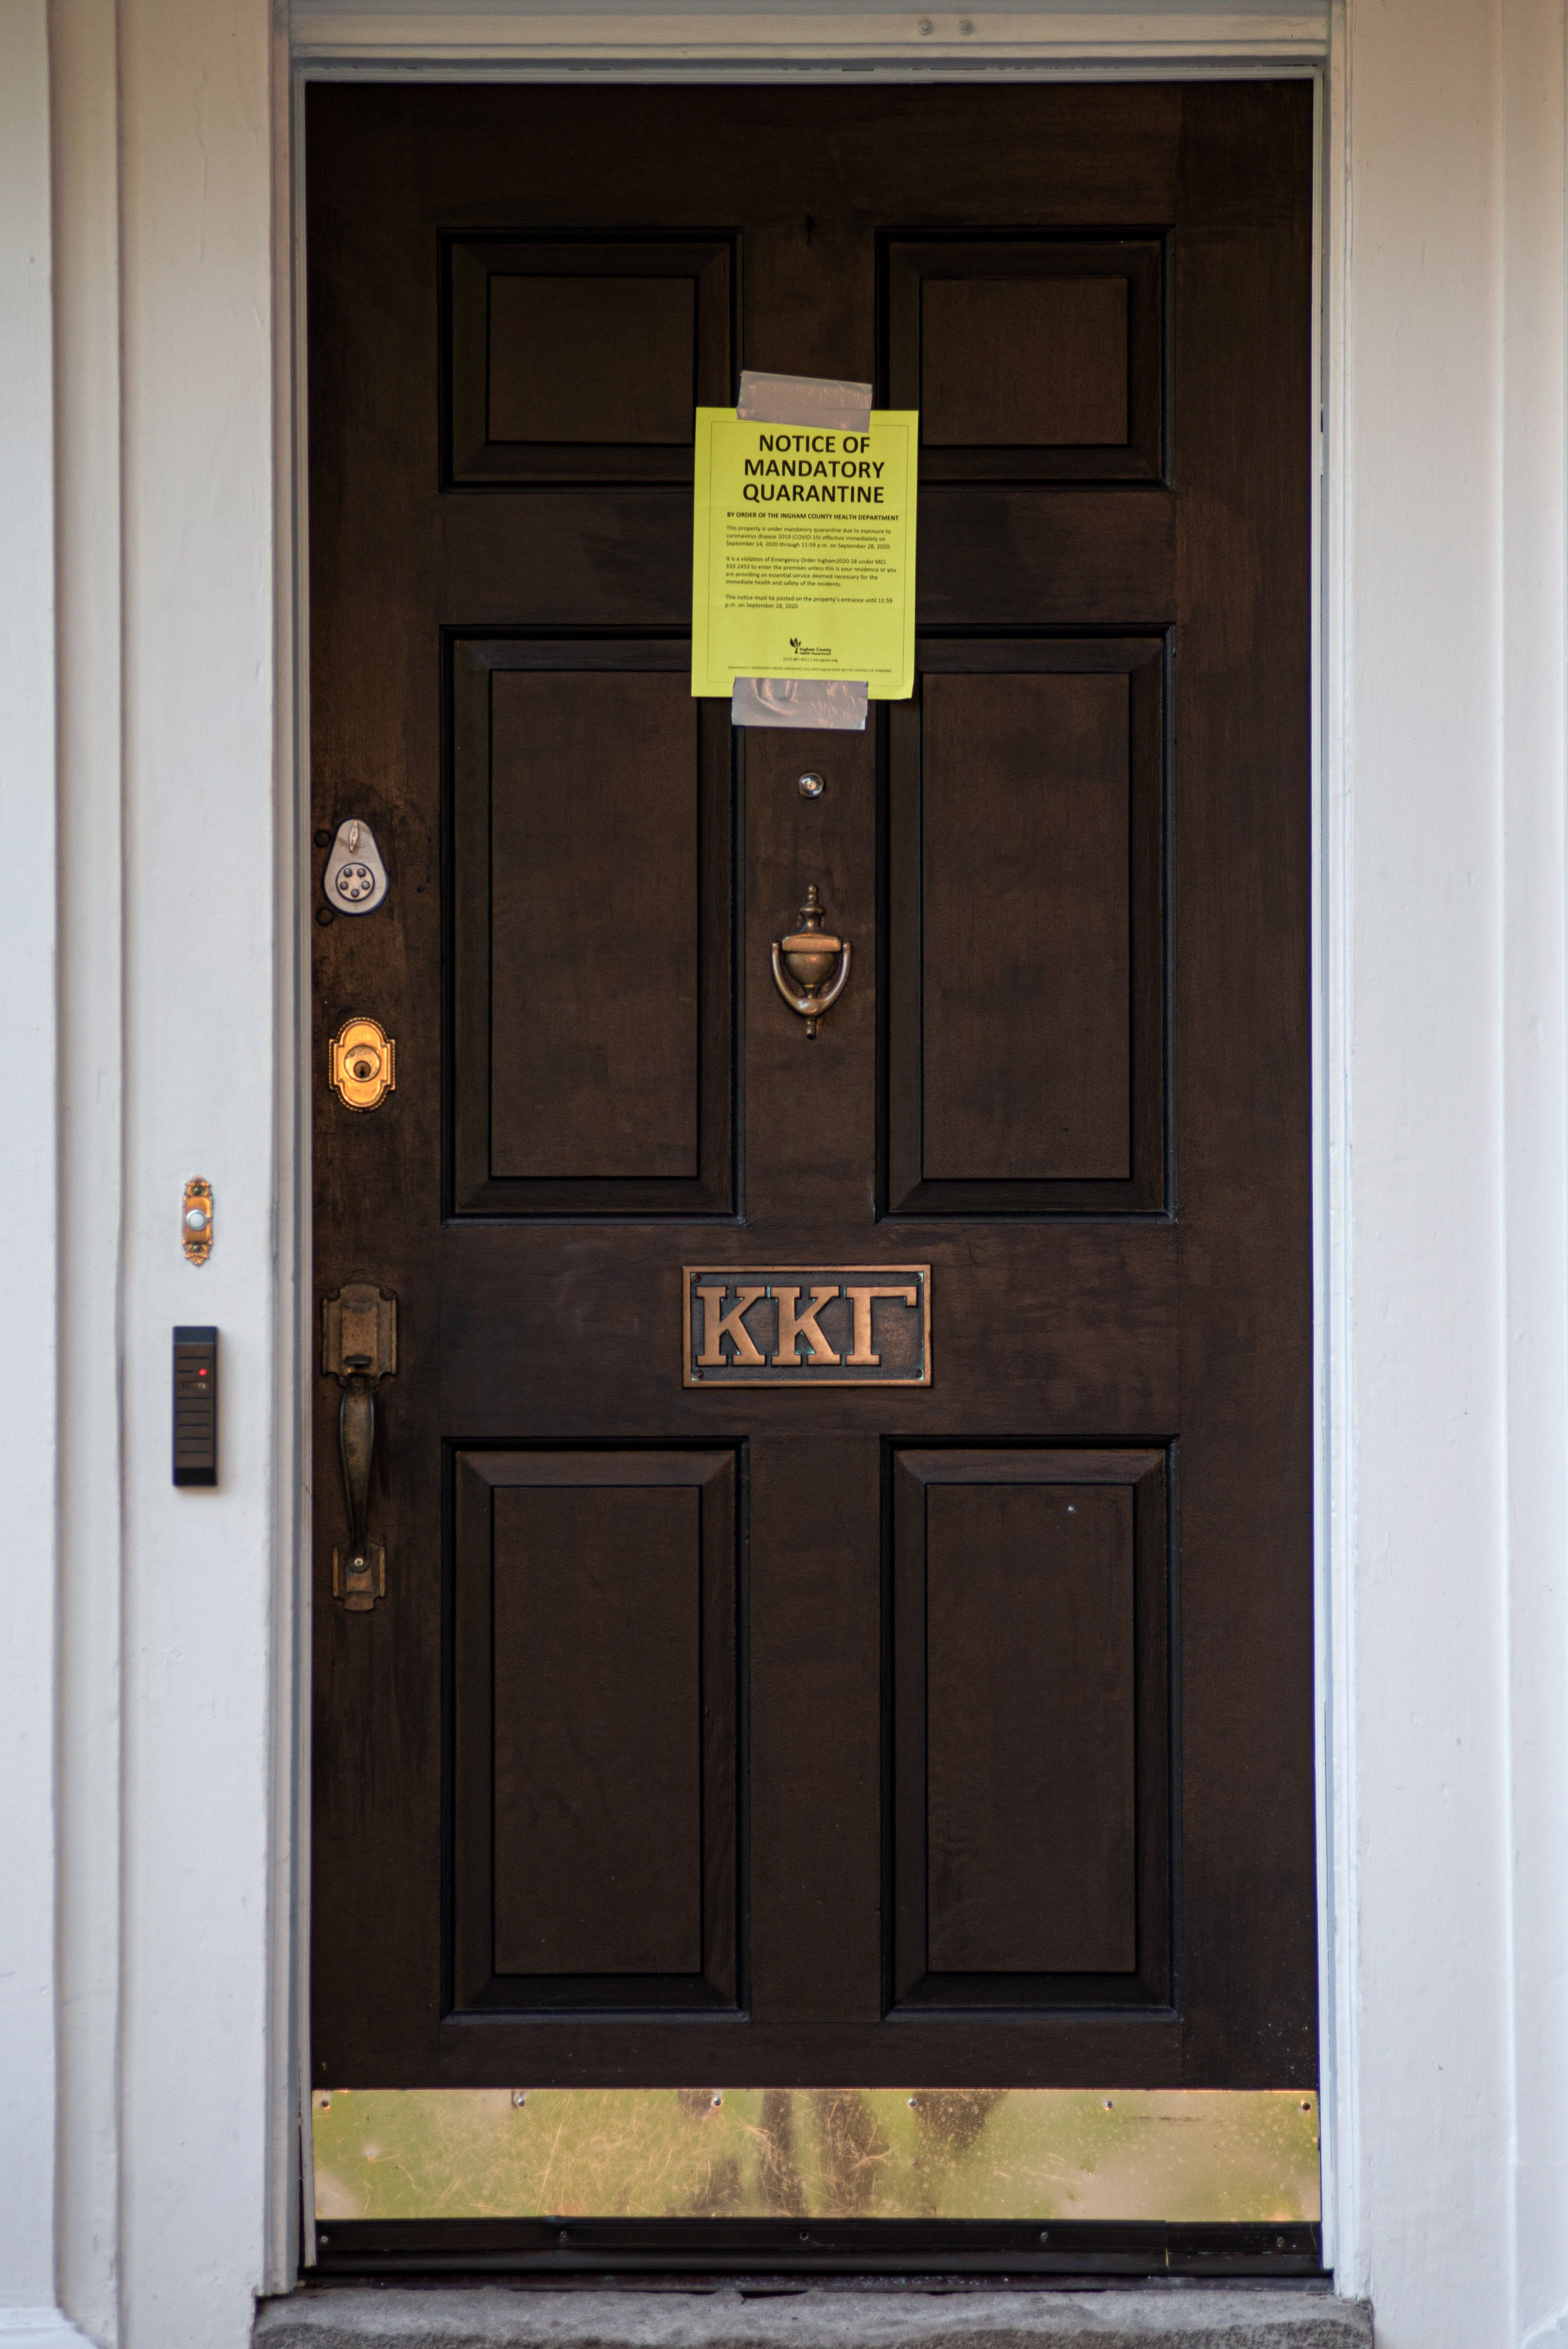 A yellow piece of paper that reads 'Notice of mandatory quarantine' is taped to the front of a wooden door. On the door are three Greek letters.